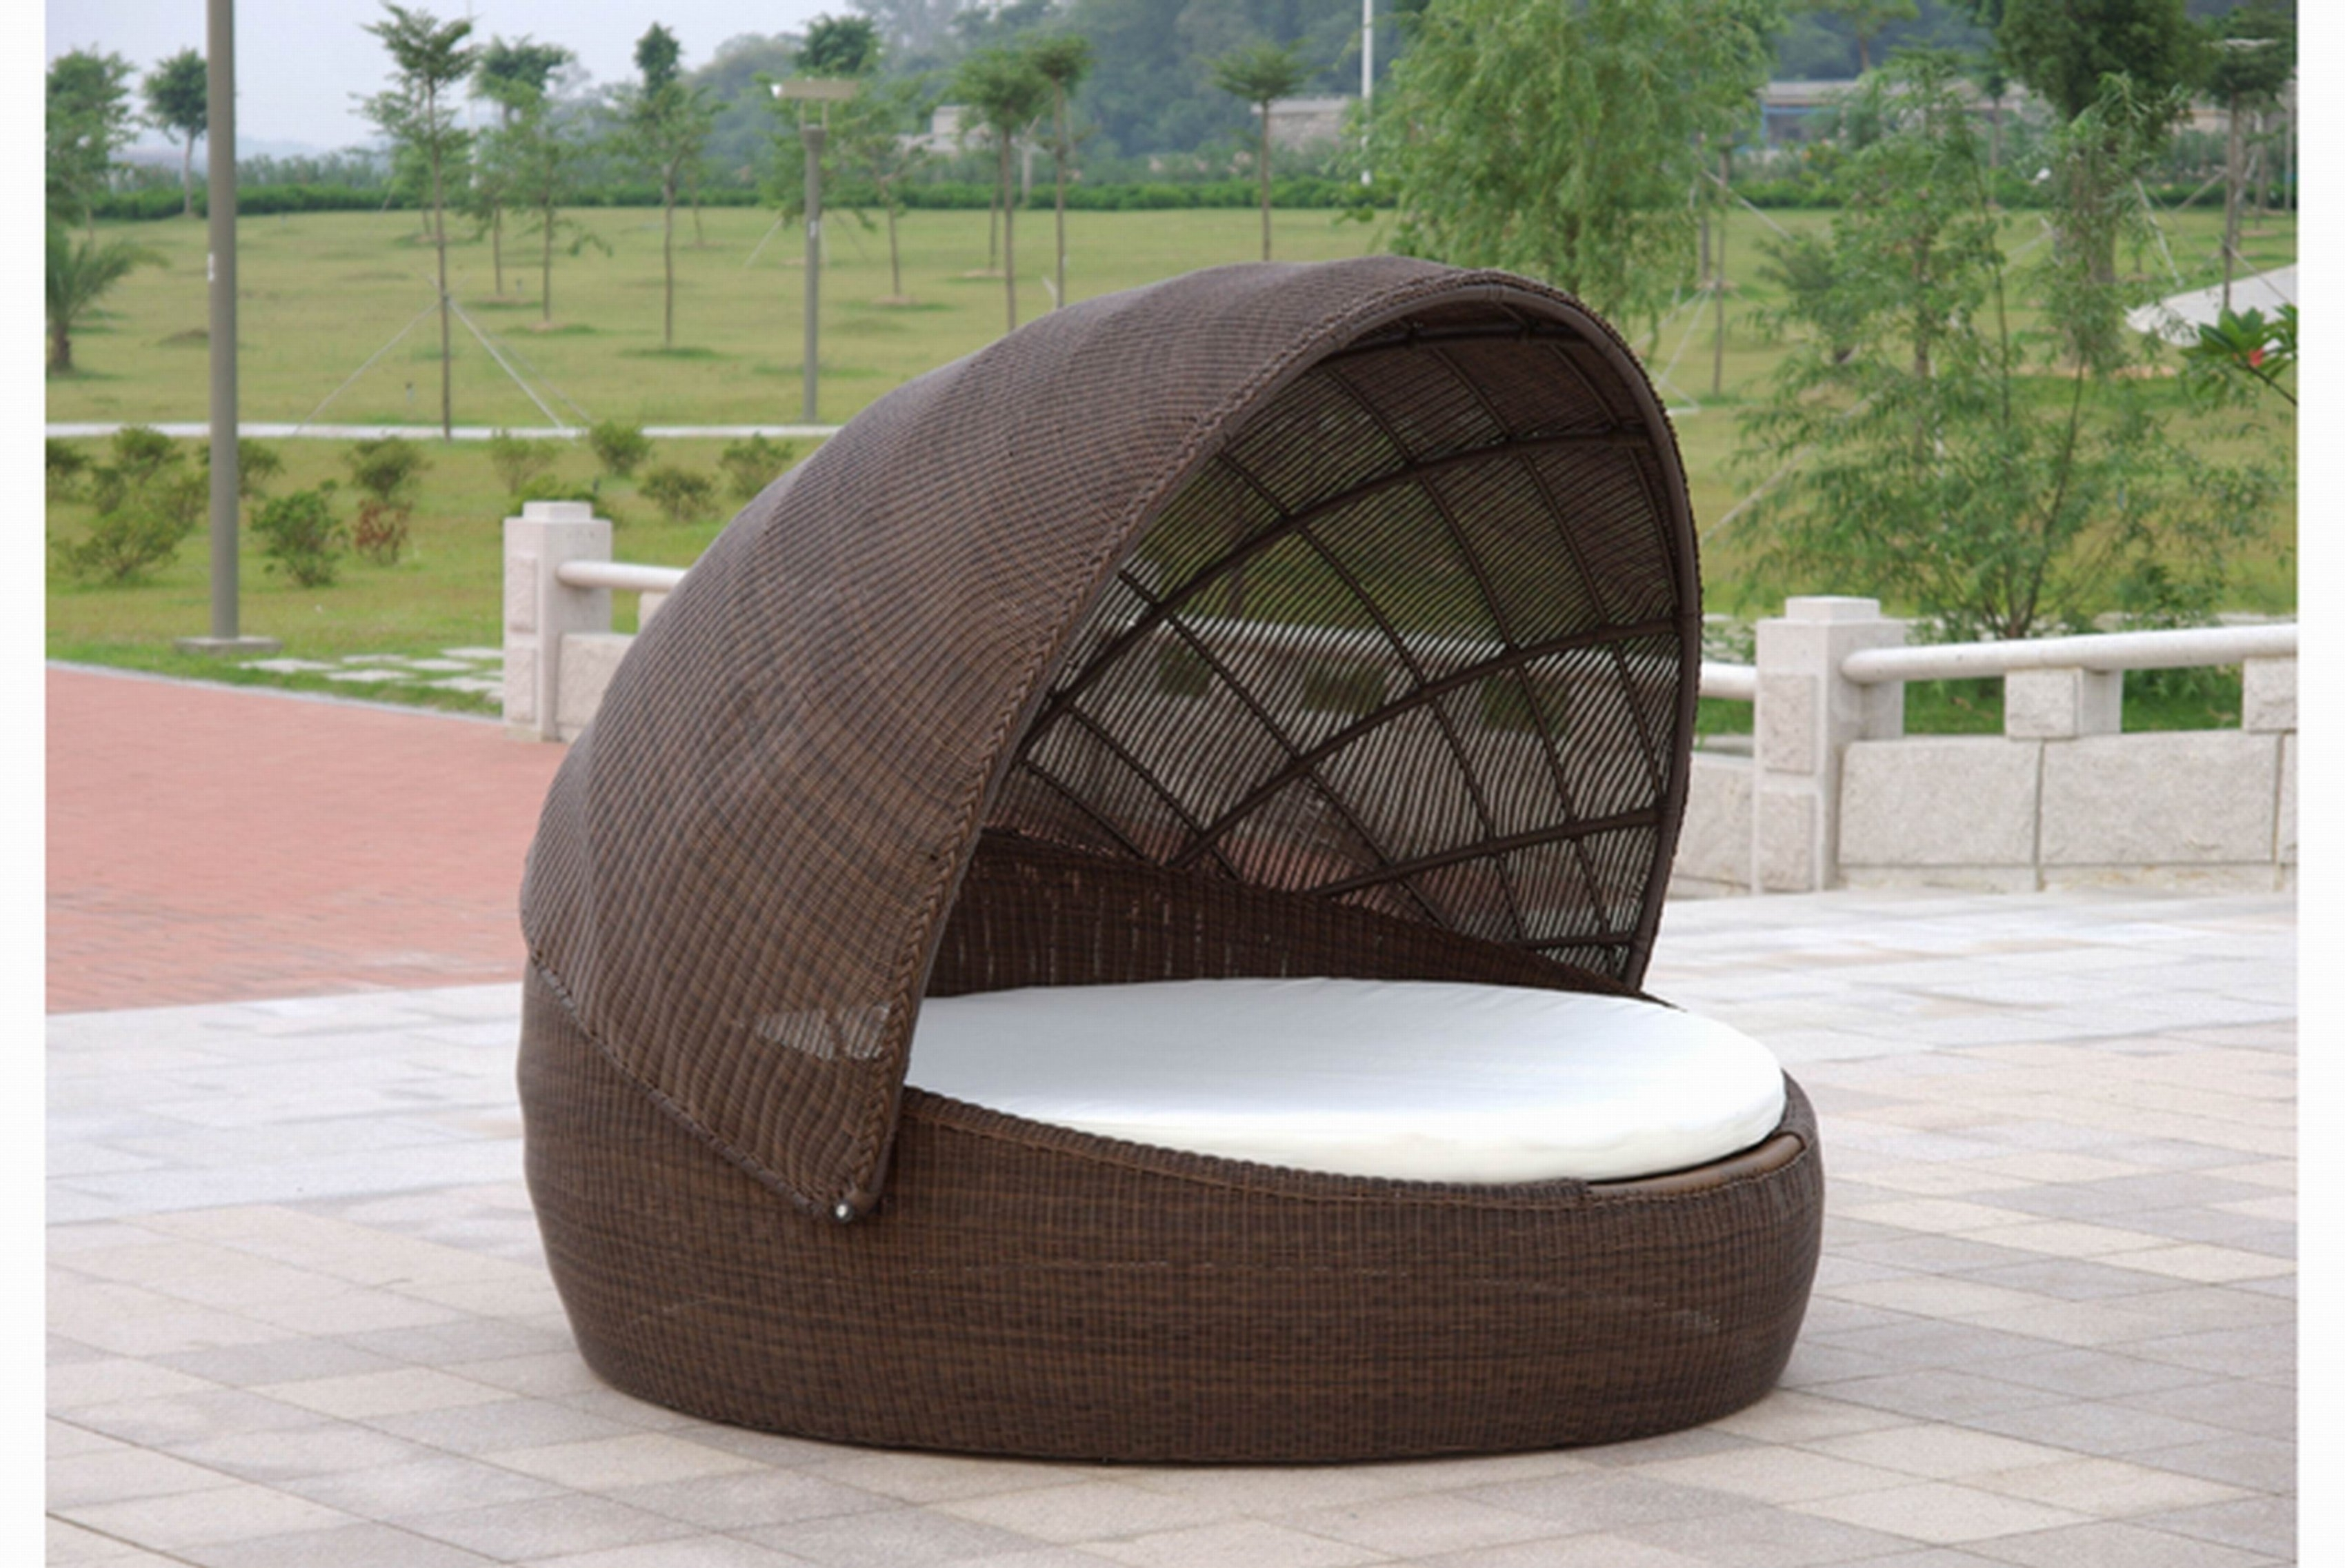 Widely Used Outdoor Sofas With Canopy Within Chaise Lounge Outdoor With Canopy With Canopy Of And Brown (View 9 of 15)